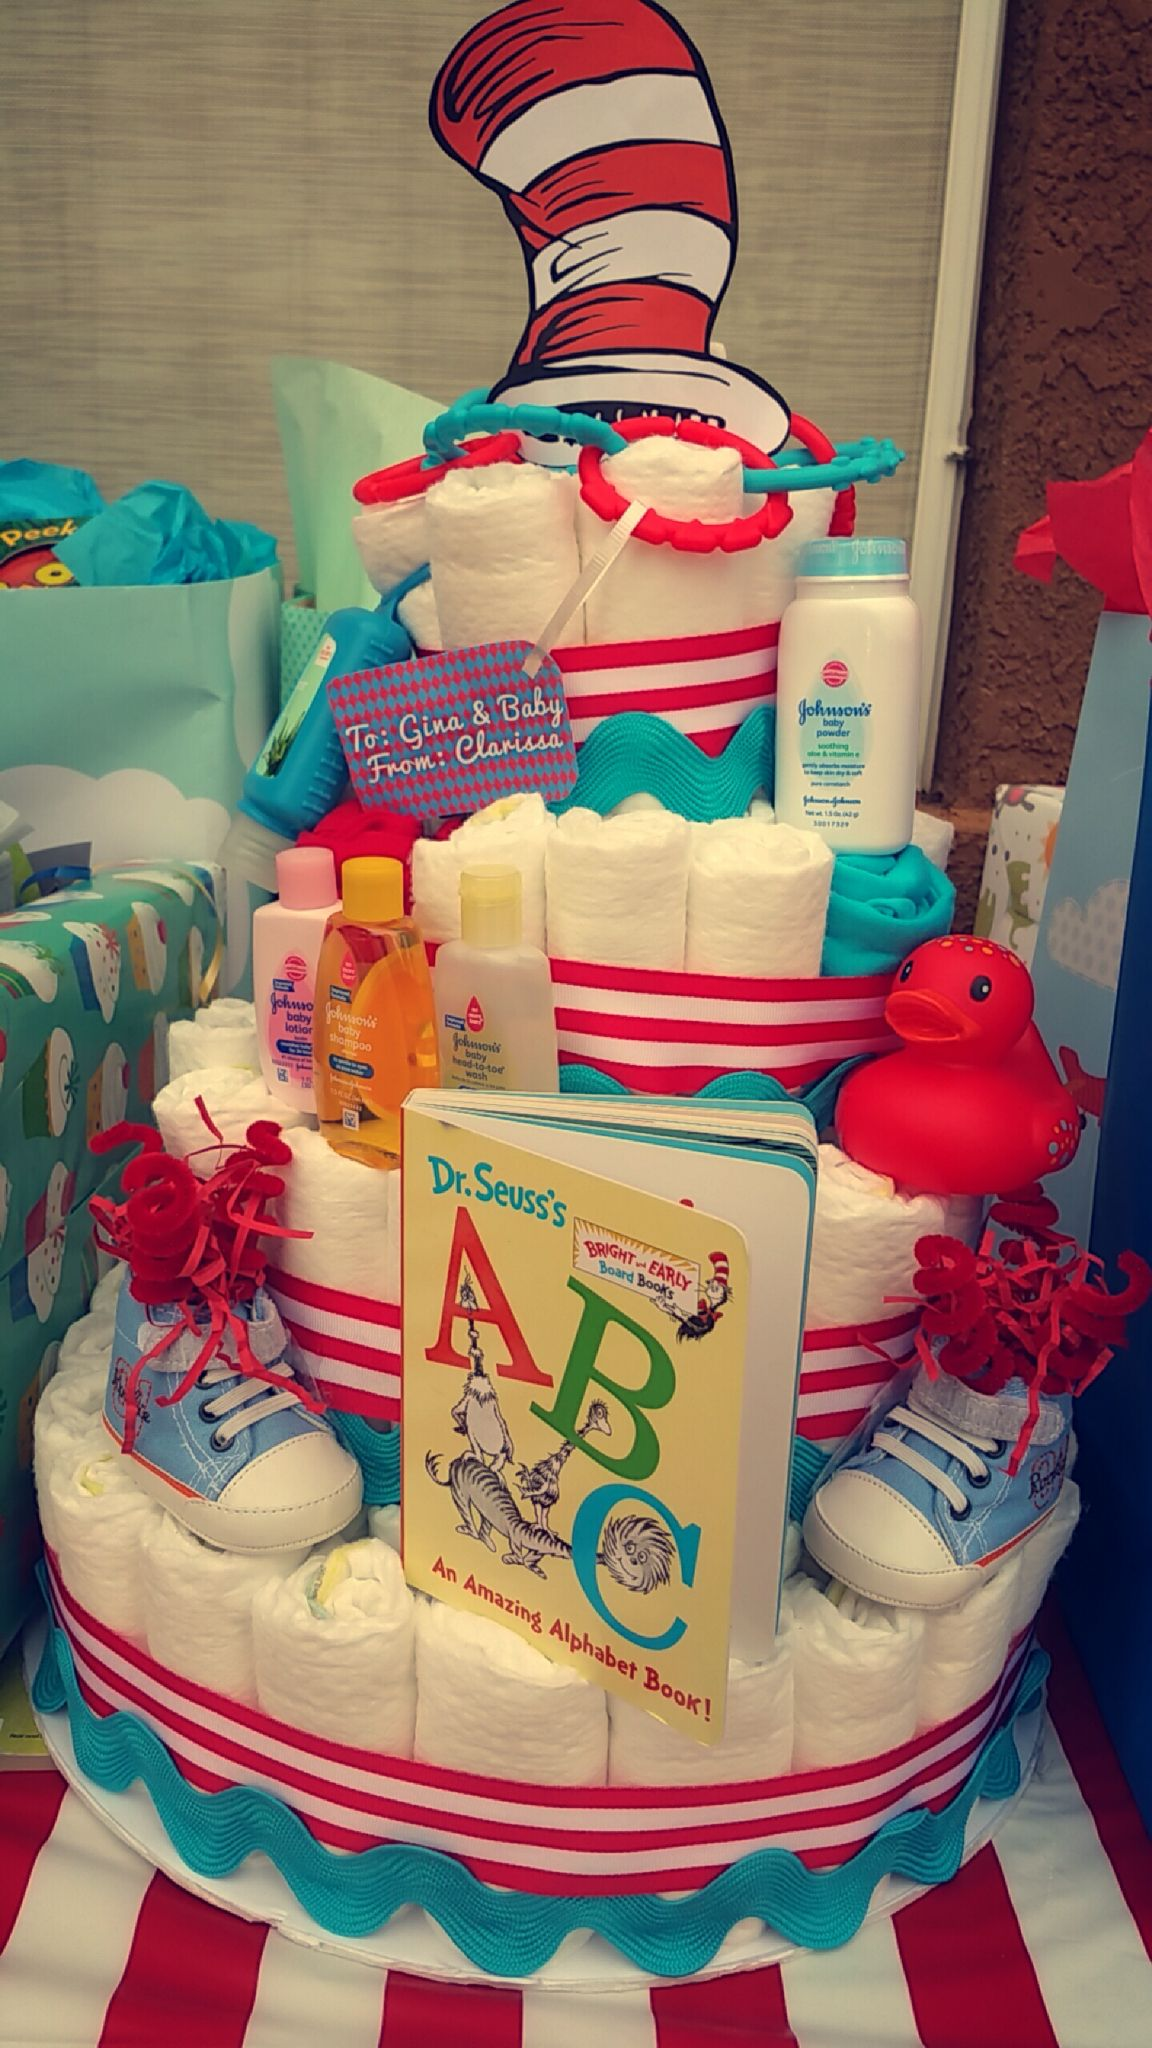 Dr Seuss Diaper Cake For Baby Shower Cat In The Hat With Images